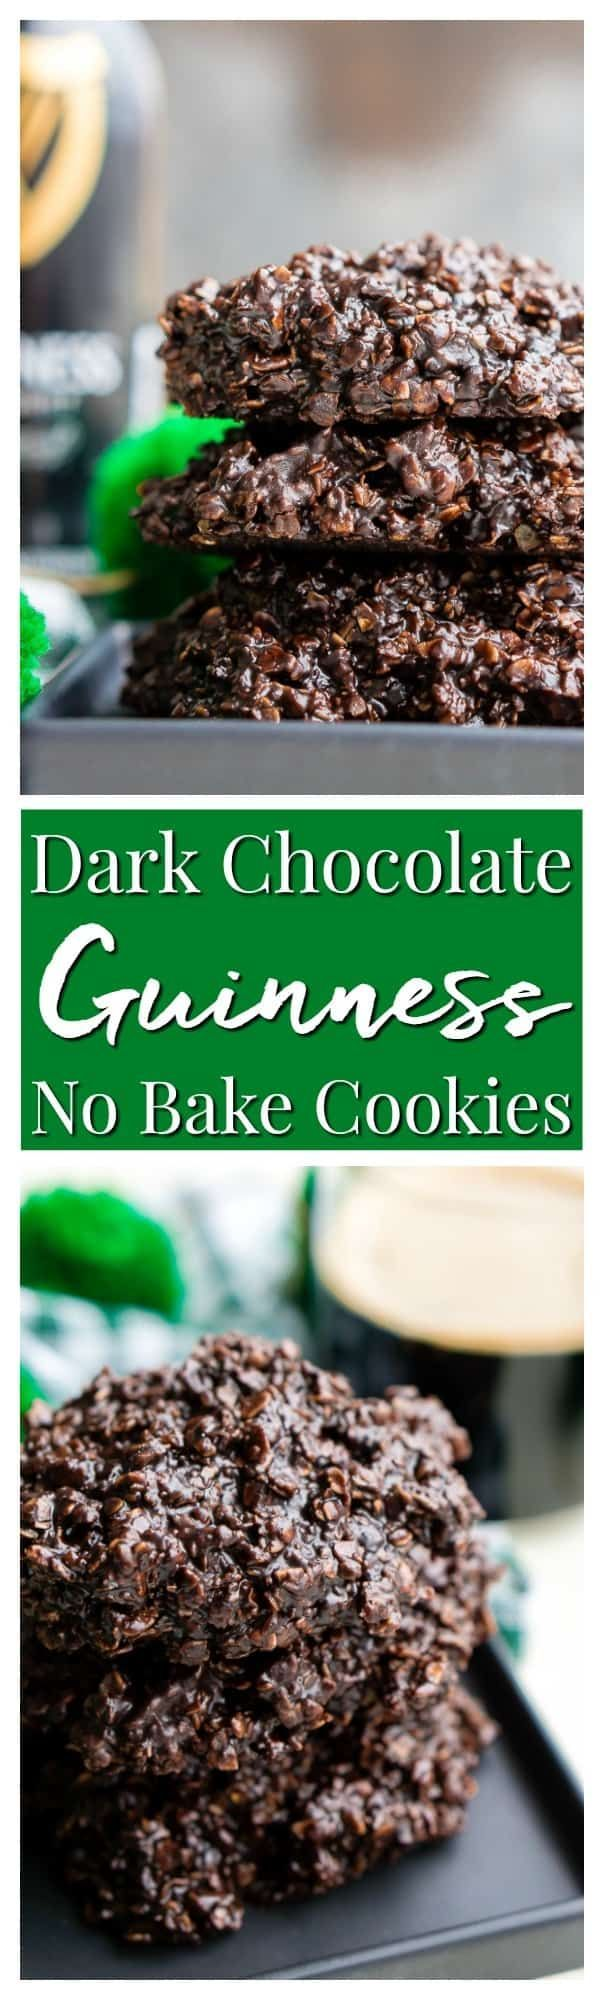 Dark Chocolate Guinness No Bake Cookies are a rich, delicious, and easy dessert for St. Patrick's Day that's made with Irish stout. via /sugarandsoulco/